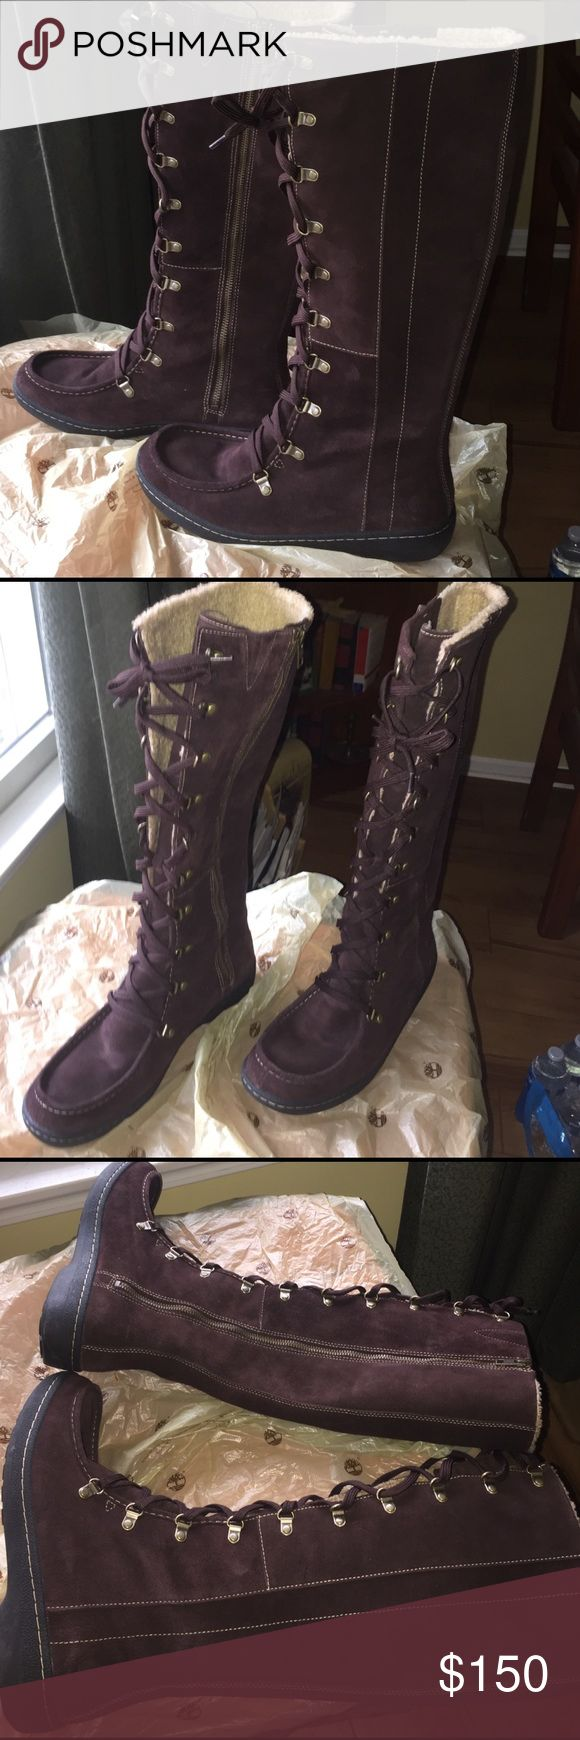 NWOT Timberland Femmes Tall Suede Boots 9 Beautiful Timberland Suede Femme Tall Winnicut Boots. Dark brown, great quality, weather proofed. Tried on once. Orig box damaged, inside packaging still intact - size 9 Make me an offer 🙋 Timberland Shoes Winter & Rain Boots